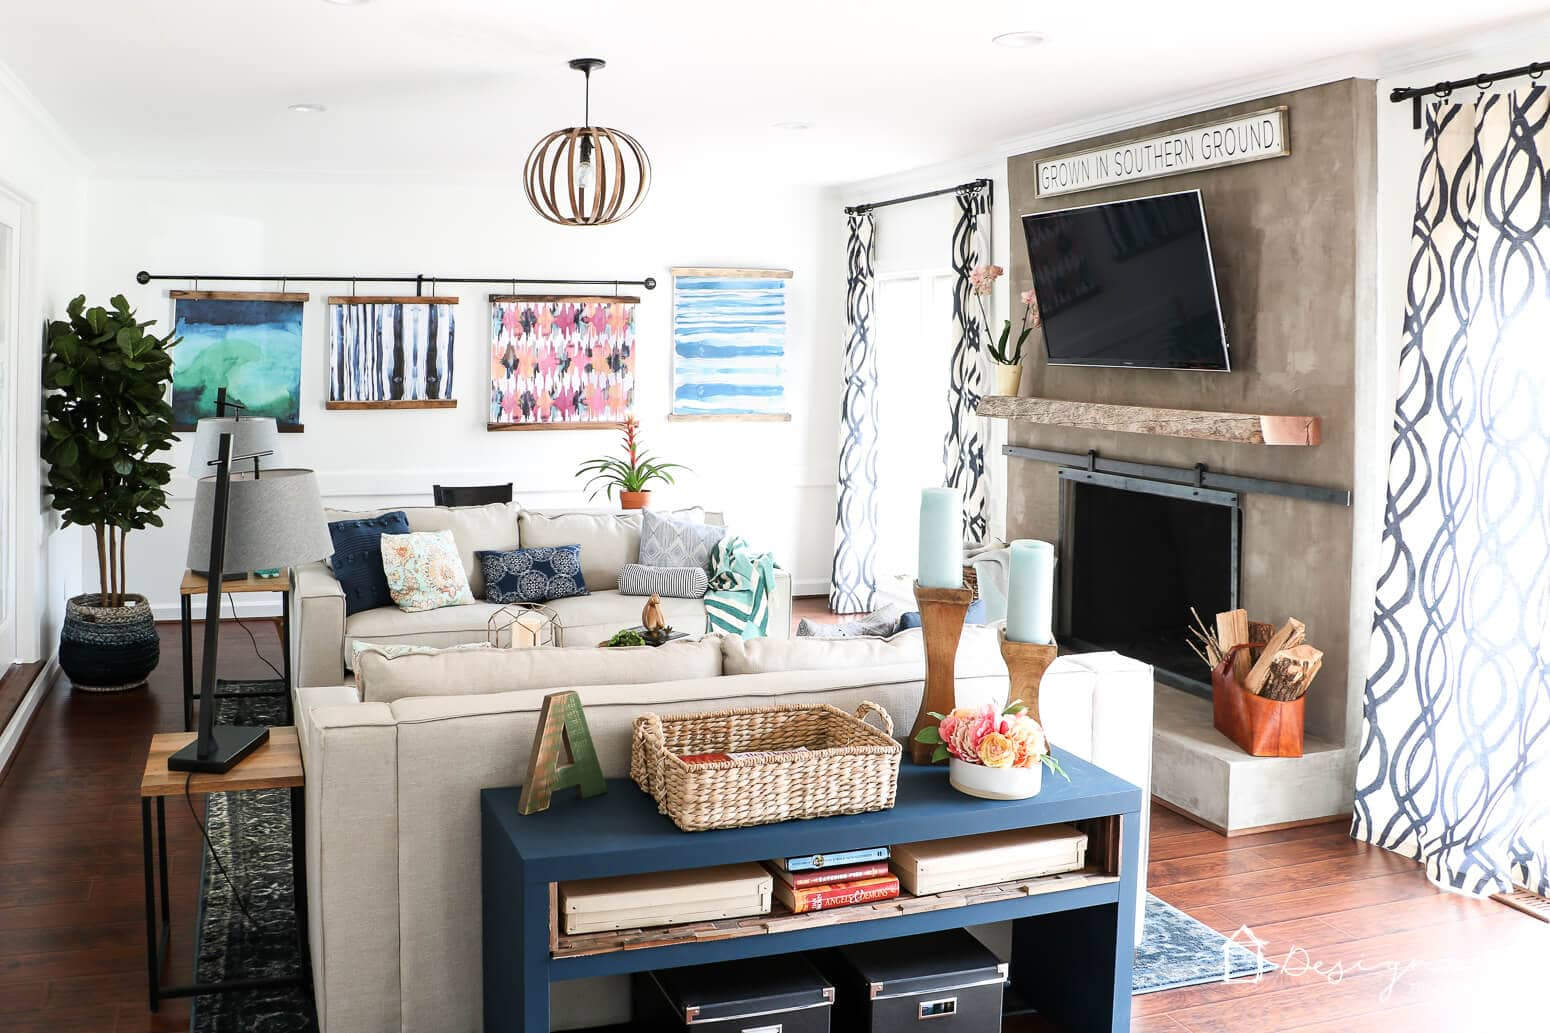 Kid Friendly Living Room Design Our New Kid Friendly Family Room Design 200 Giveaway